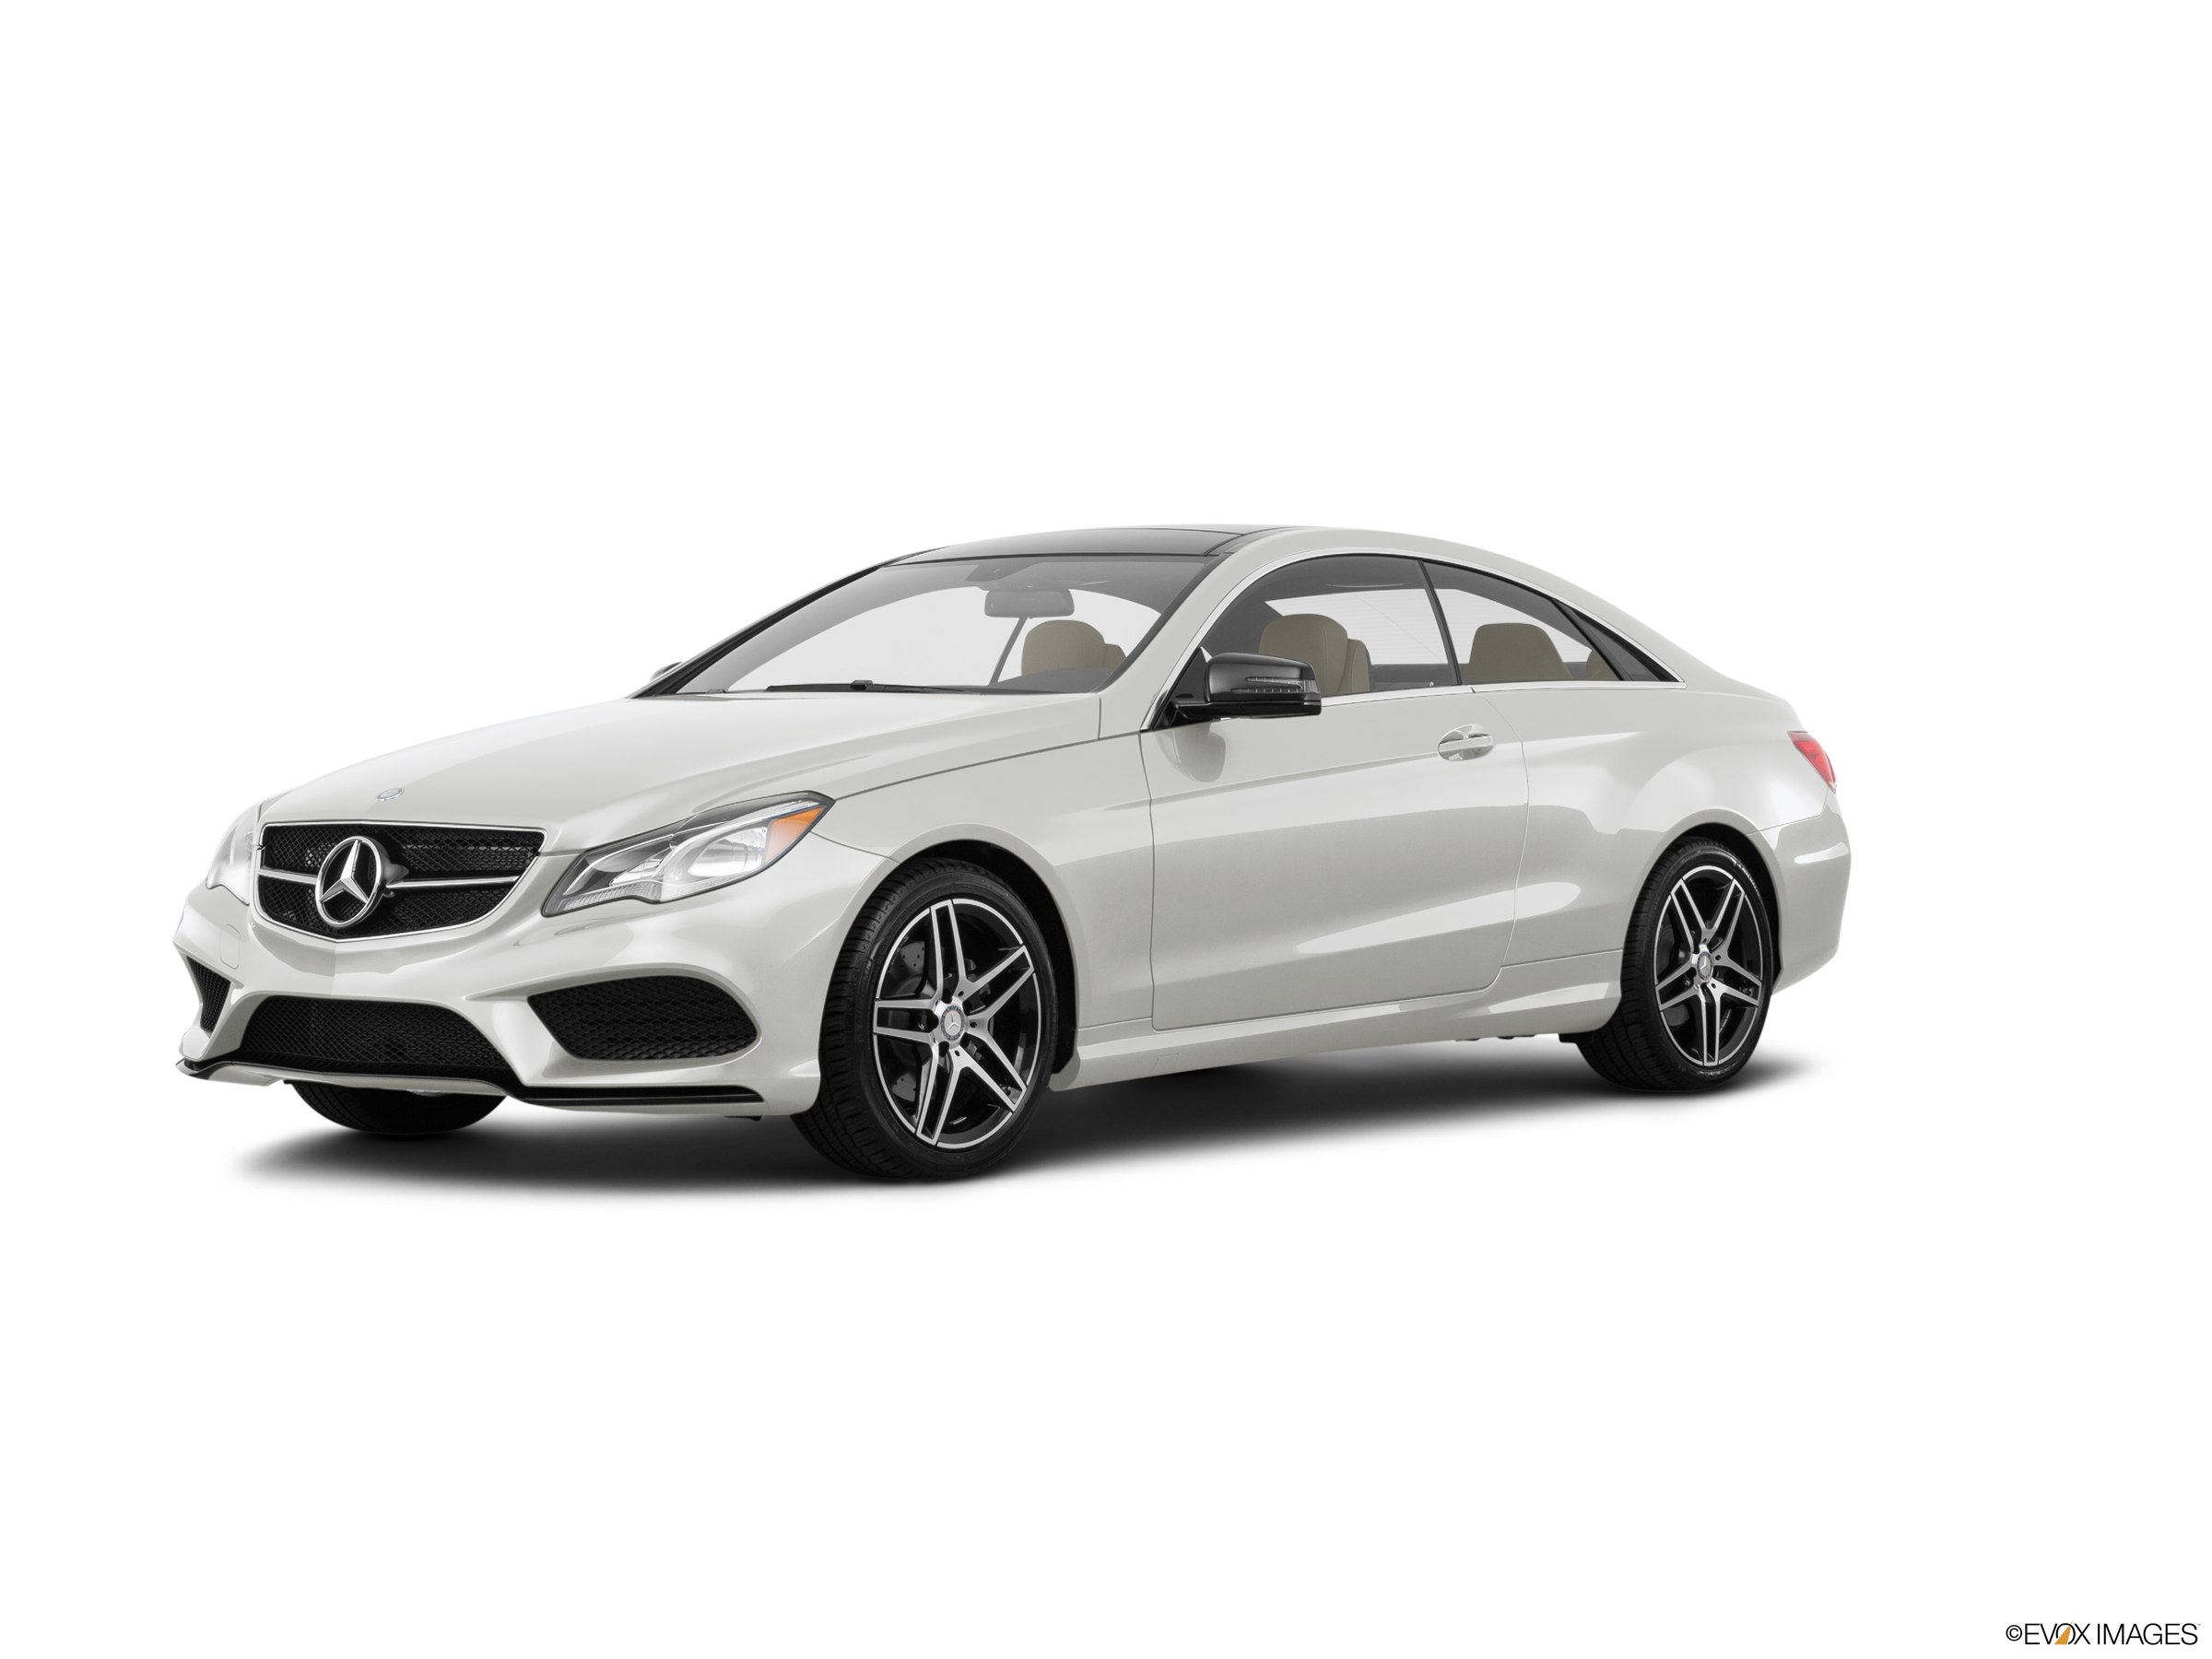 Top Expert Rated Coupes of 2017 - 2017 Mercedes-Benz E-Class